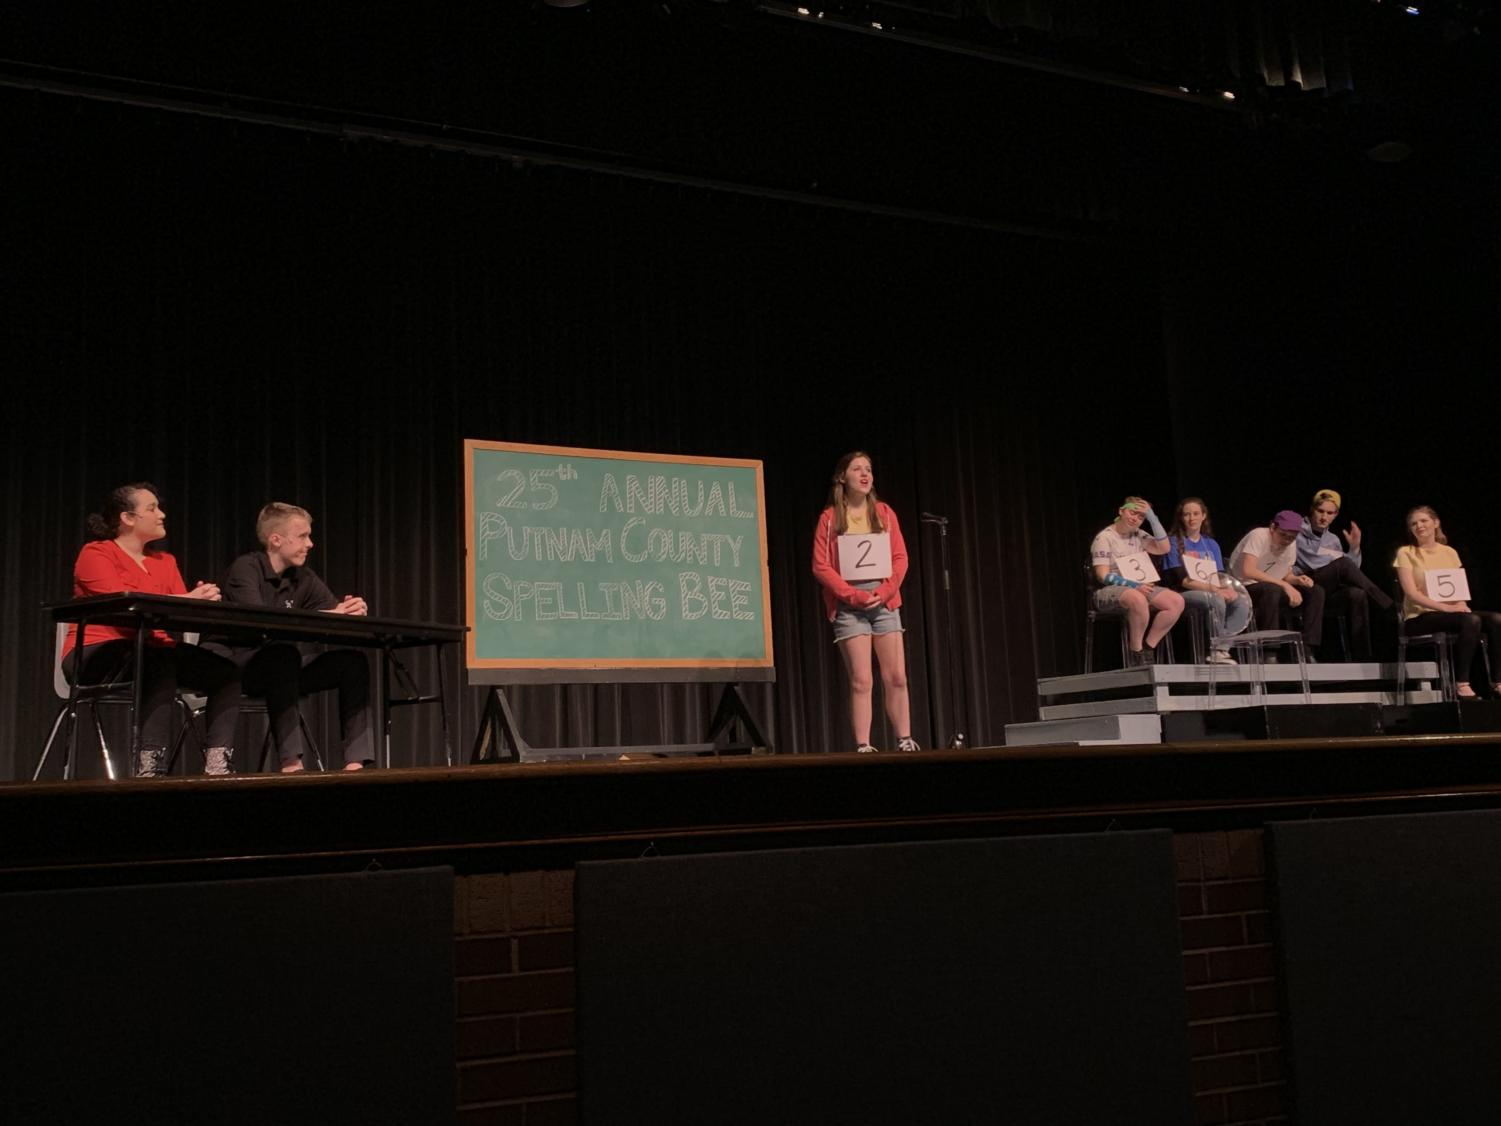 """Eight members of the cast perform """"My Friend, The Dictionary"""" from the musical """"The 25th Annual Putnam County Spelling Bee"""" during the Fame Show in the CHS auditorium last night. The Fame Show is a class show for Fame, the acting II class, taught by CHS theater teacher Karen Ruth, vocal coach Ben Brown and dance instructor Whitney Bollinger."""